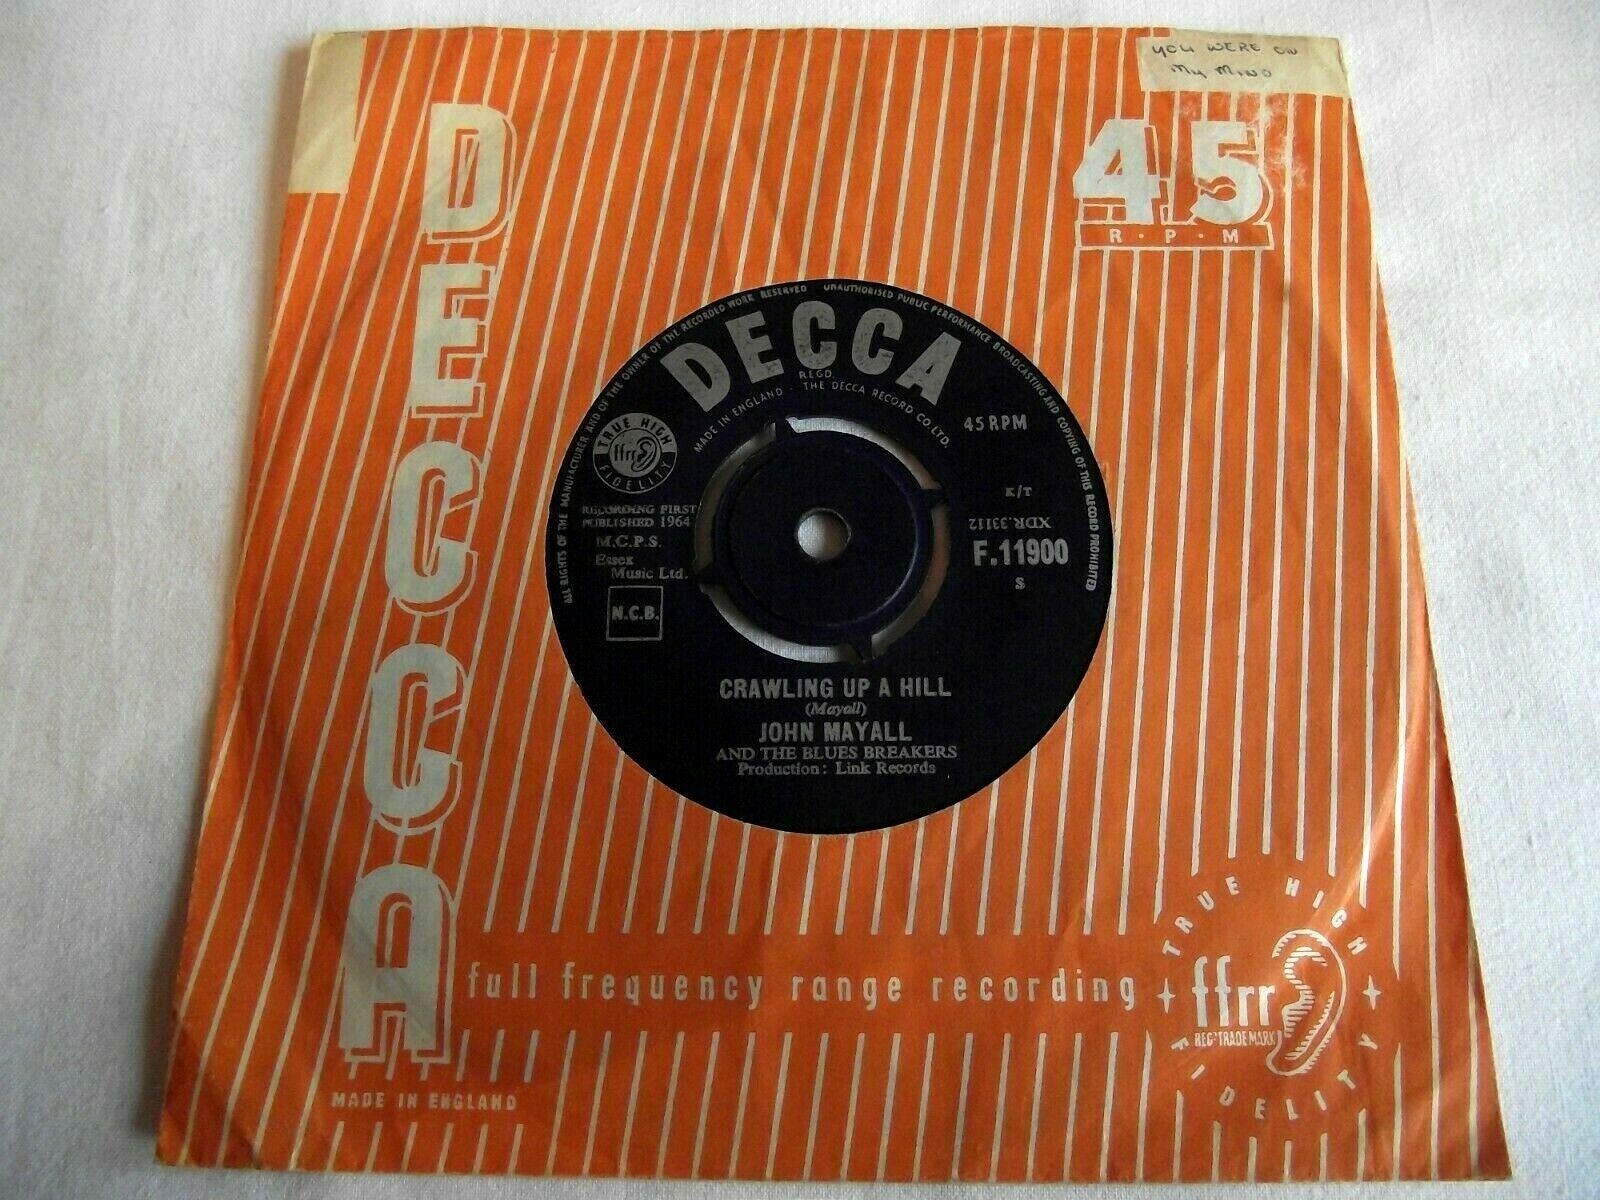 JOHN MAYALL AND THE BLUES BREAKERS   CRAWLING UP A HILL ** 1964 DECCA 45